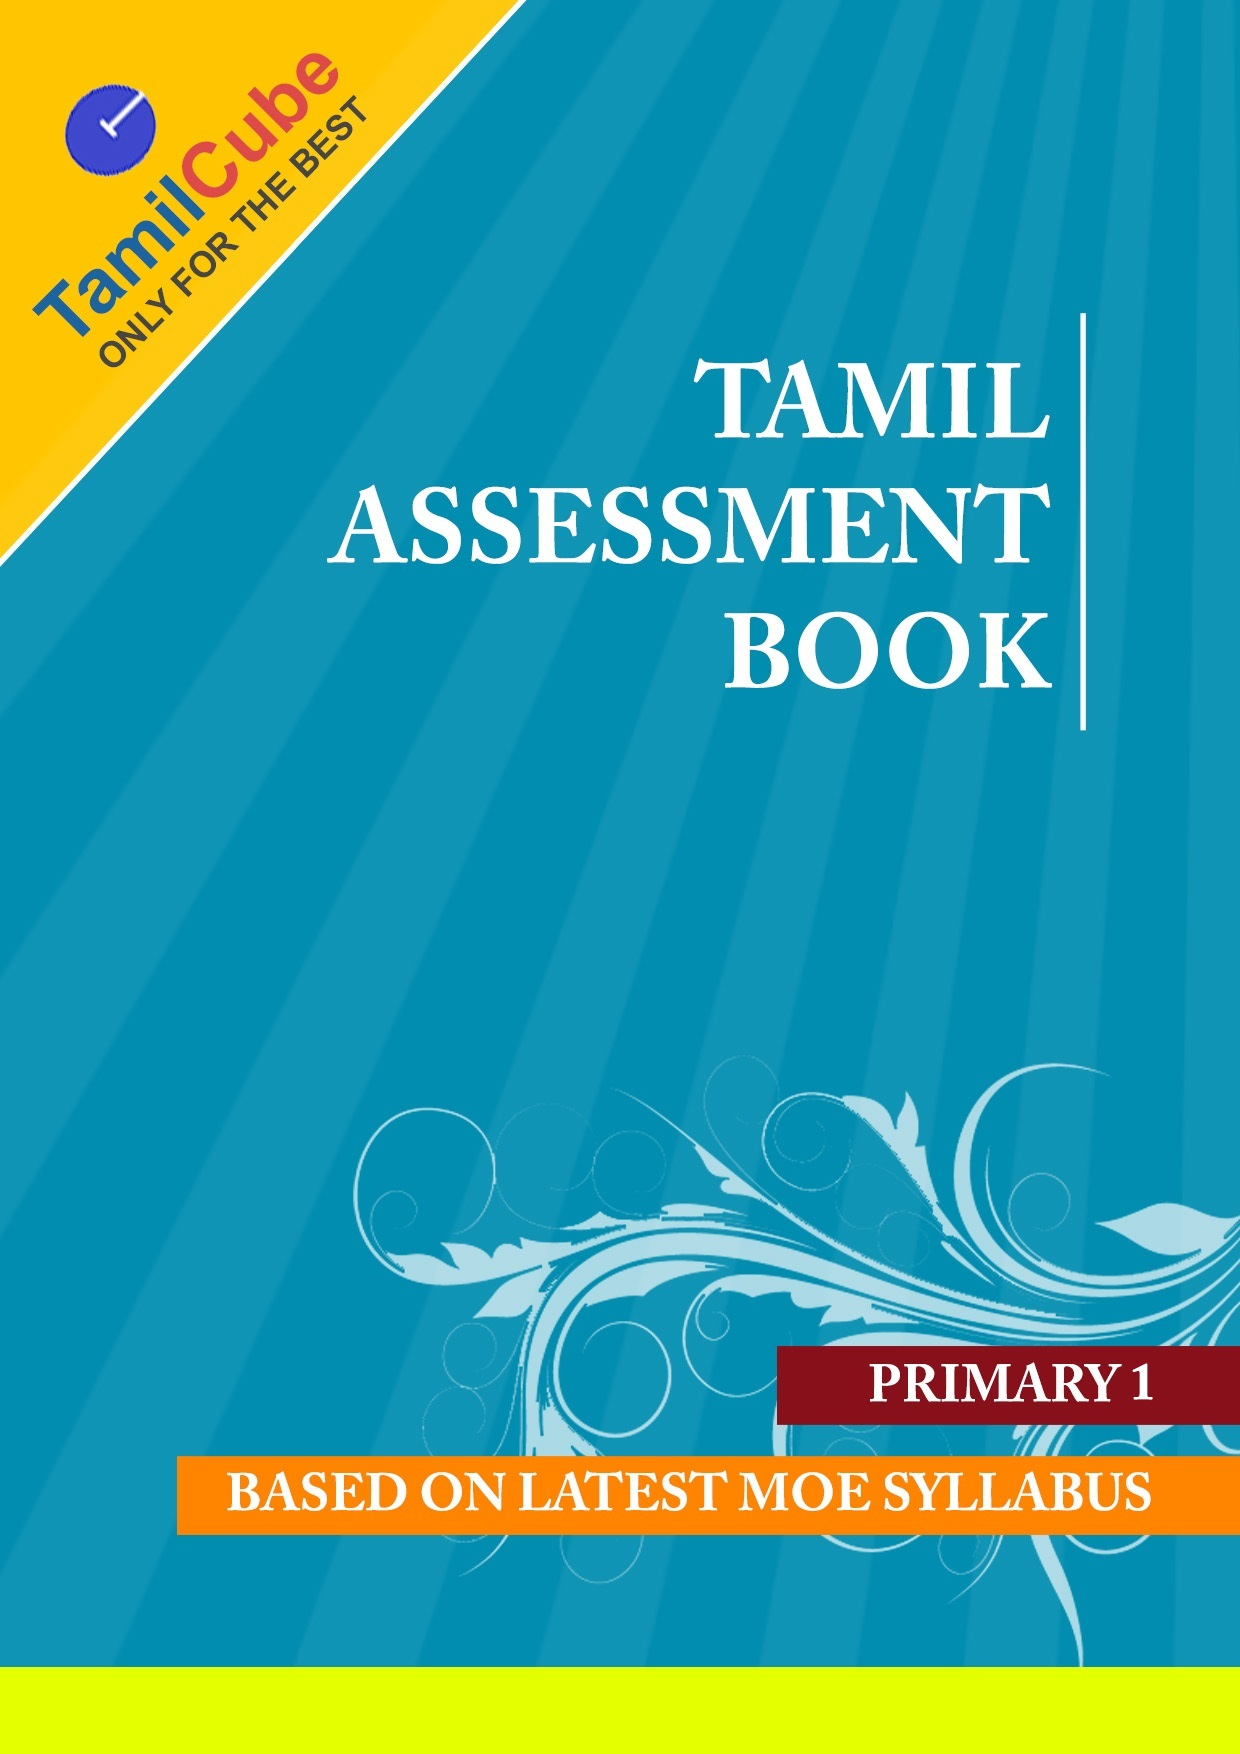 Primary 1 Tamil assessment book (Tamilcube) | Tamilcube Shop